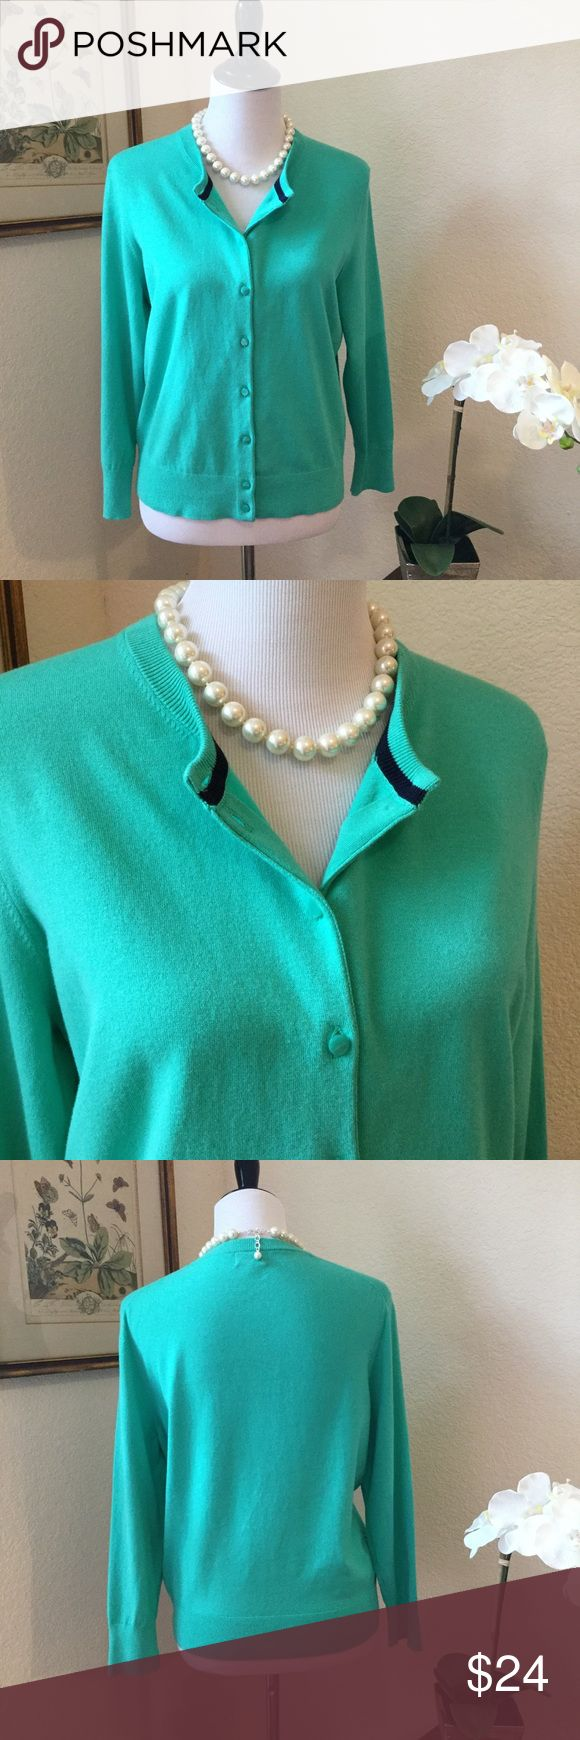 CROWN & IVY Turquoise Cotton Cardigan Charming cotton and spandex turquoise cardigan sweater with navy blue interior trim. This cute lightweight cardi has matching front buttons and long sleeves. In excellent condition. It's an XL, but sized more like a L. Wear year round! Crown & Ivy Sweaters Cardigans